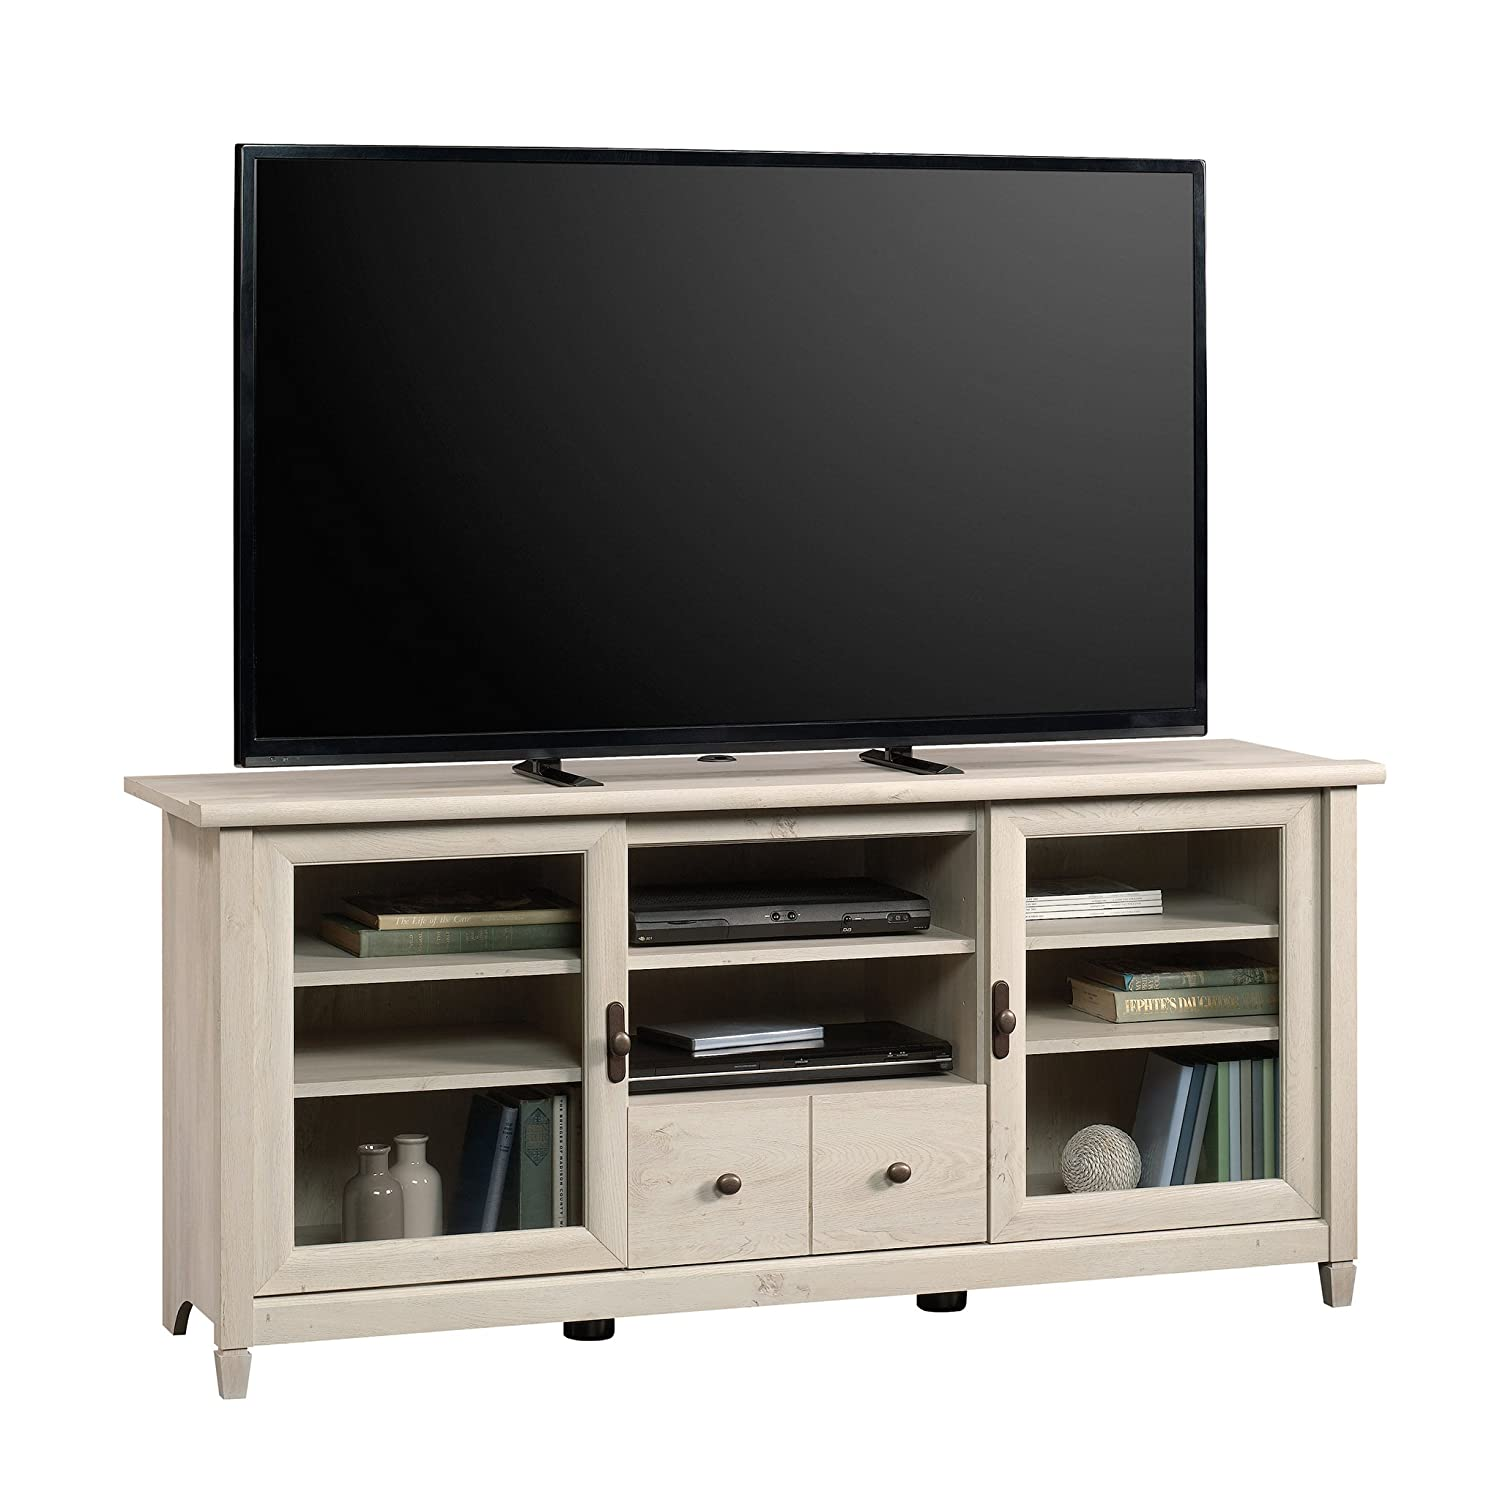 Sauder Edge Water Entertainment Credenza, For TV s up to 55 , Chalked Chestnut finish